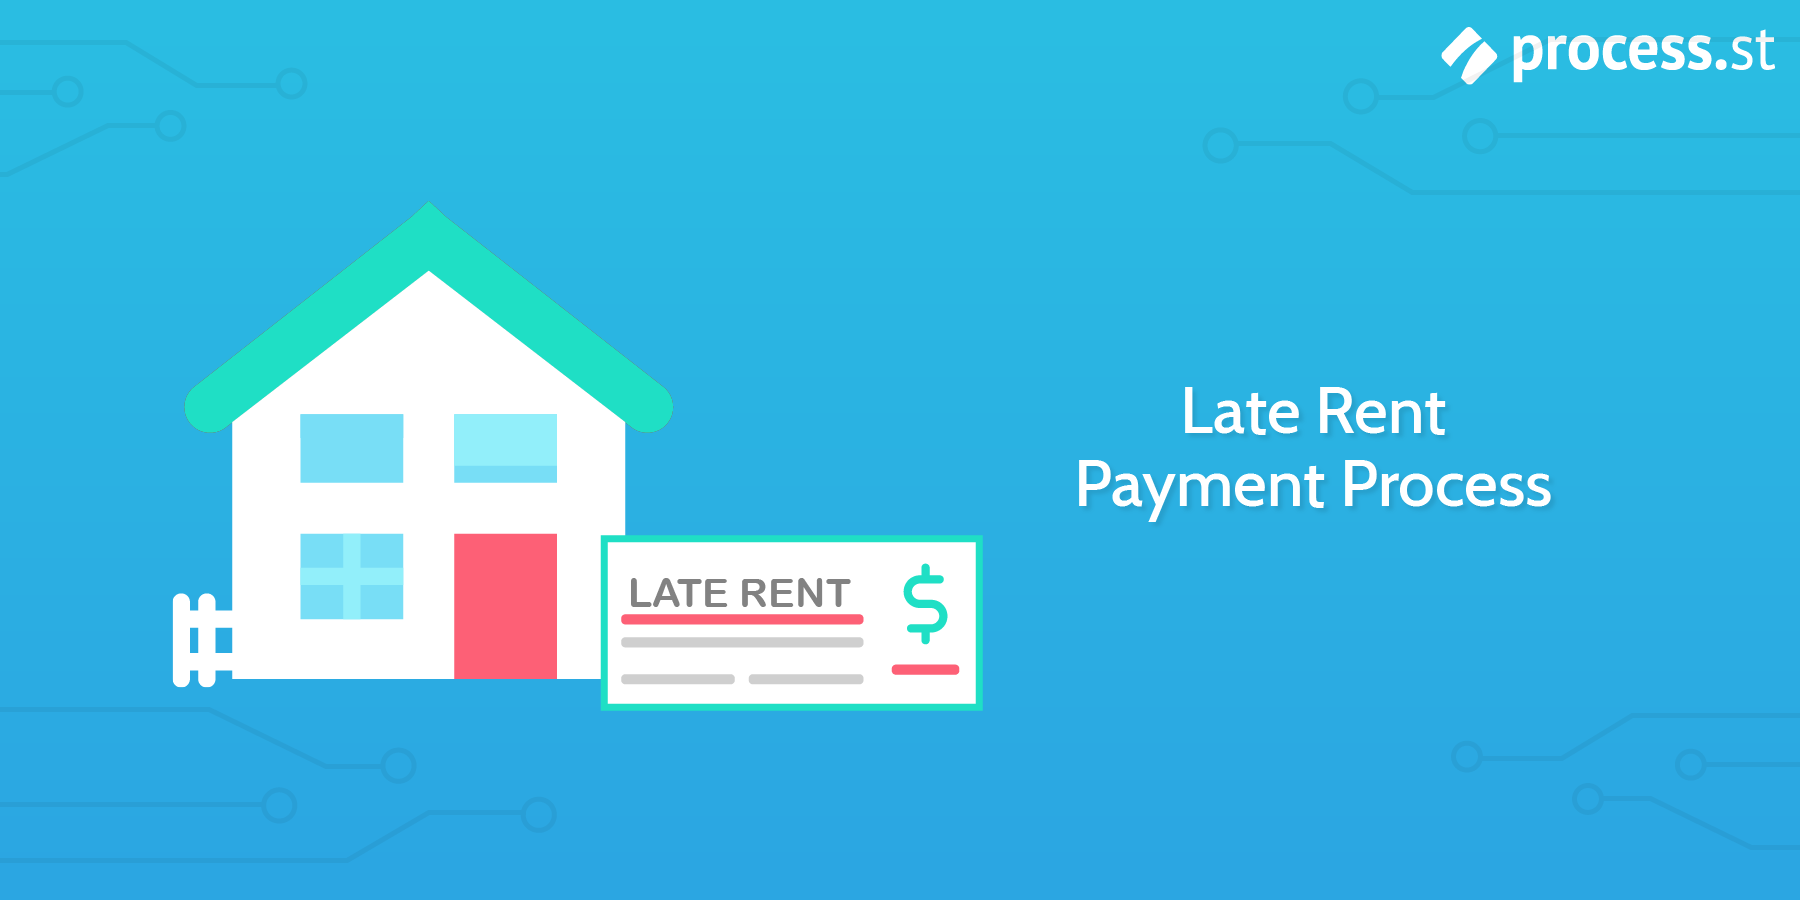 buildium-checklists-late-rent-payment-process